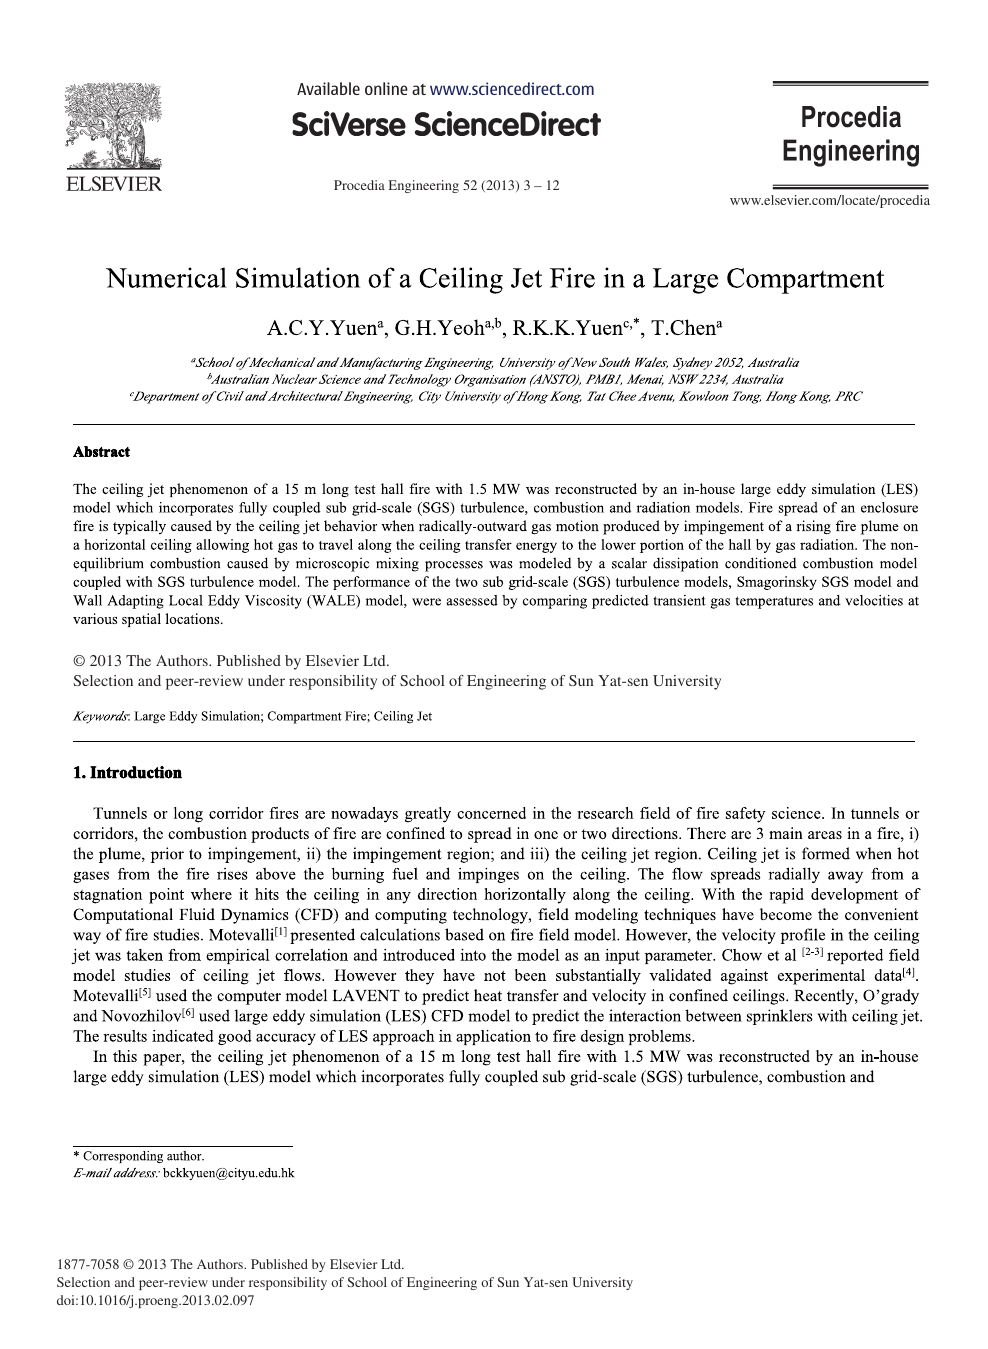 Numerical Simulation of a Ceiling Jet Fire in a Large